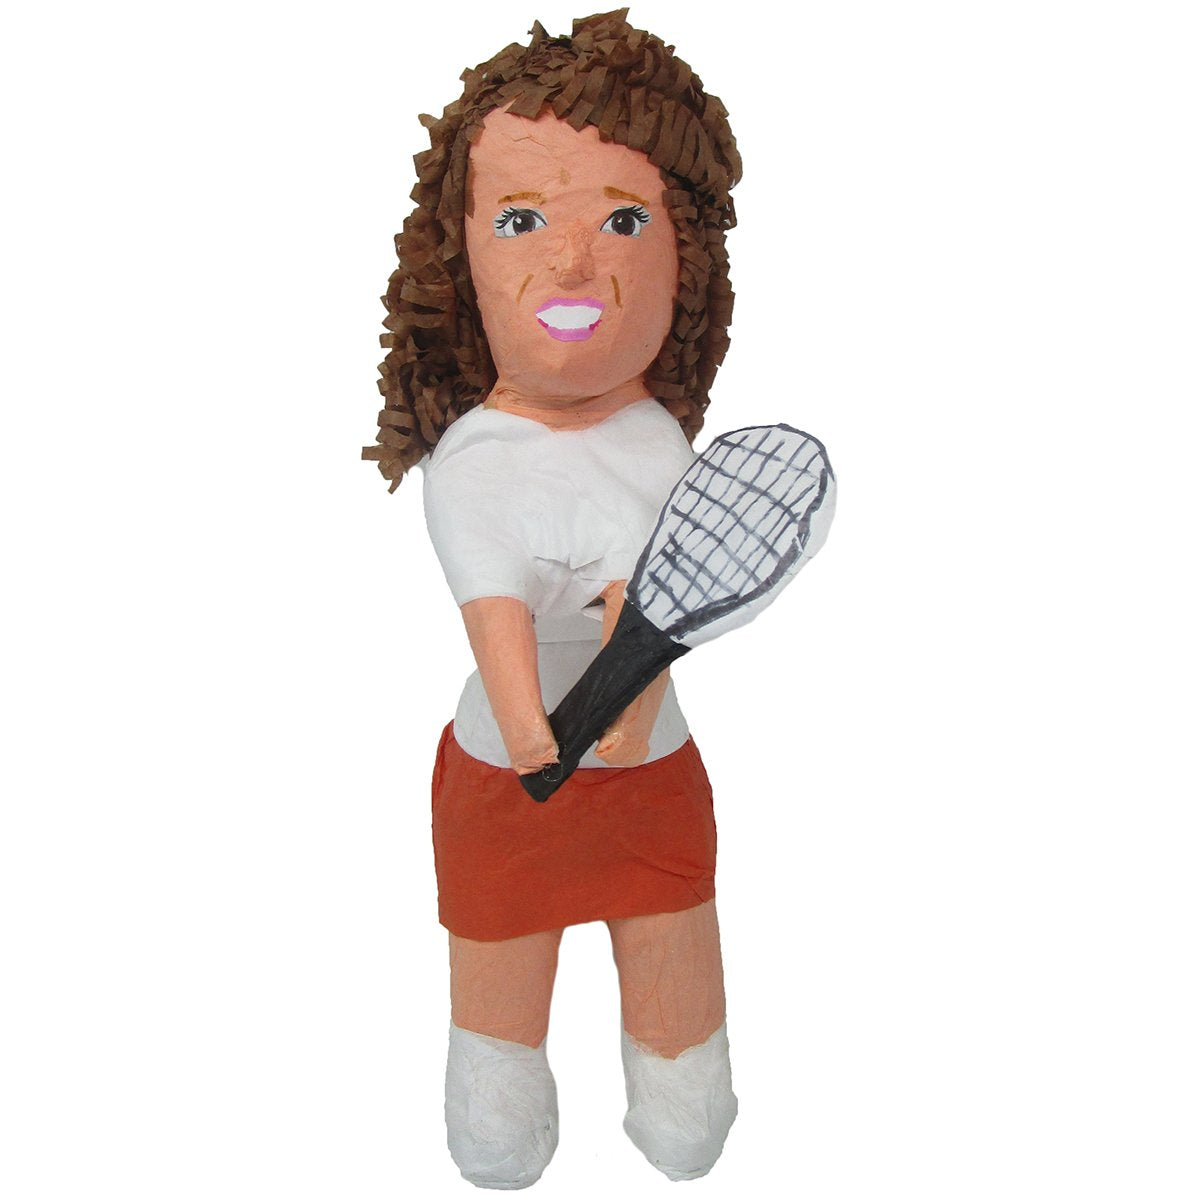 CUSTOM TENNIS PLAYER PINATA